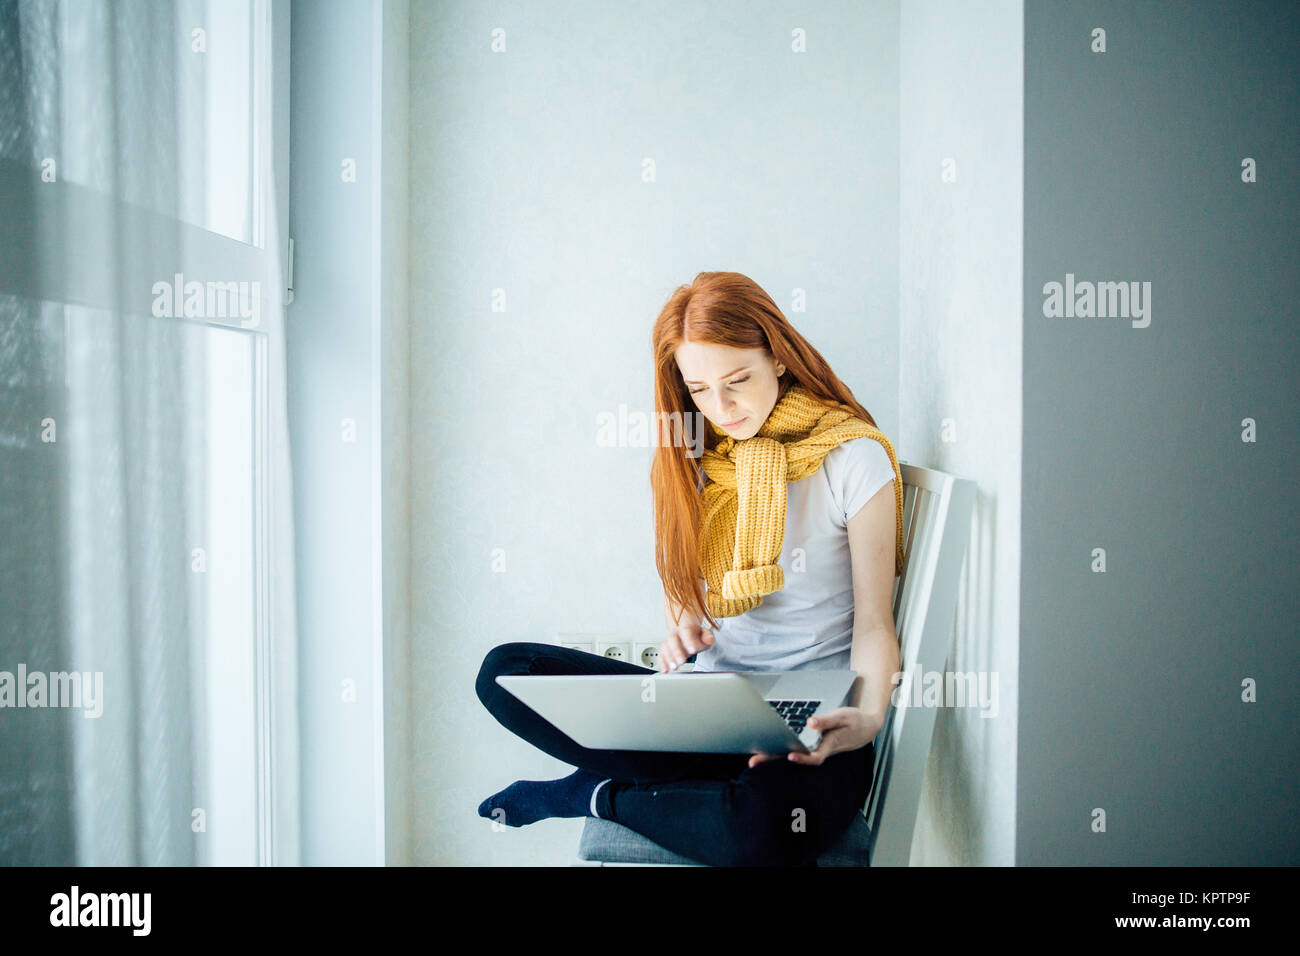 young woman using laptop at home - Stock Image